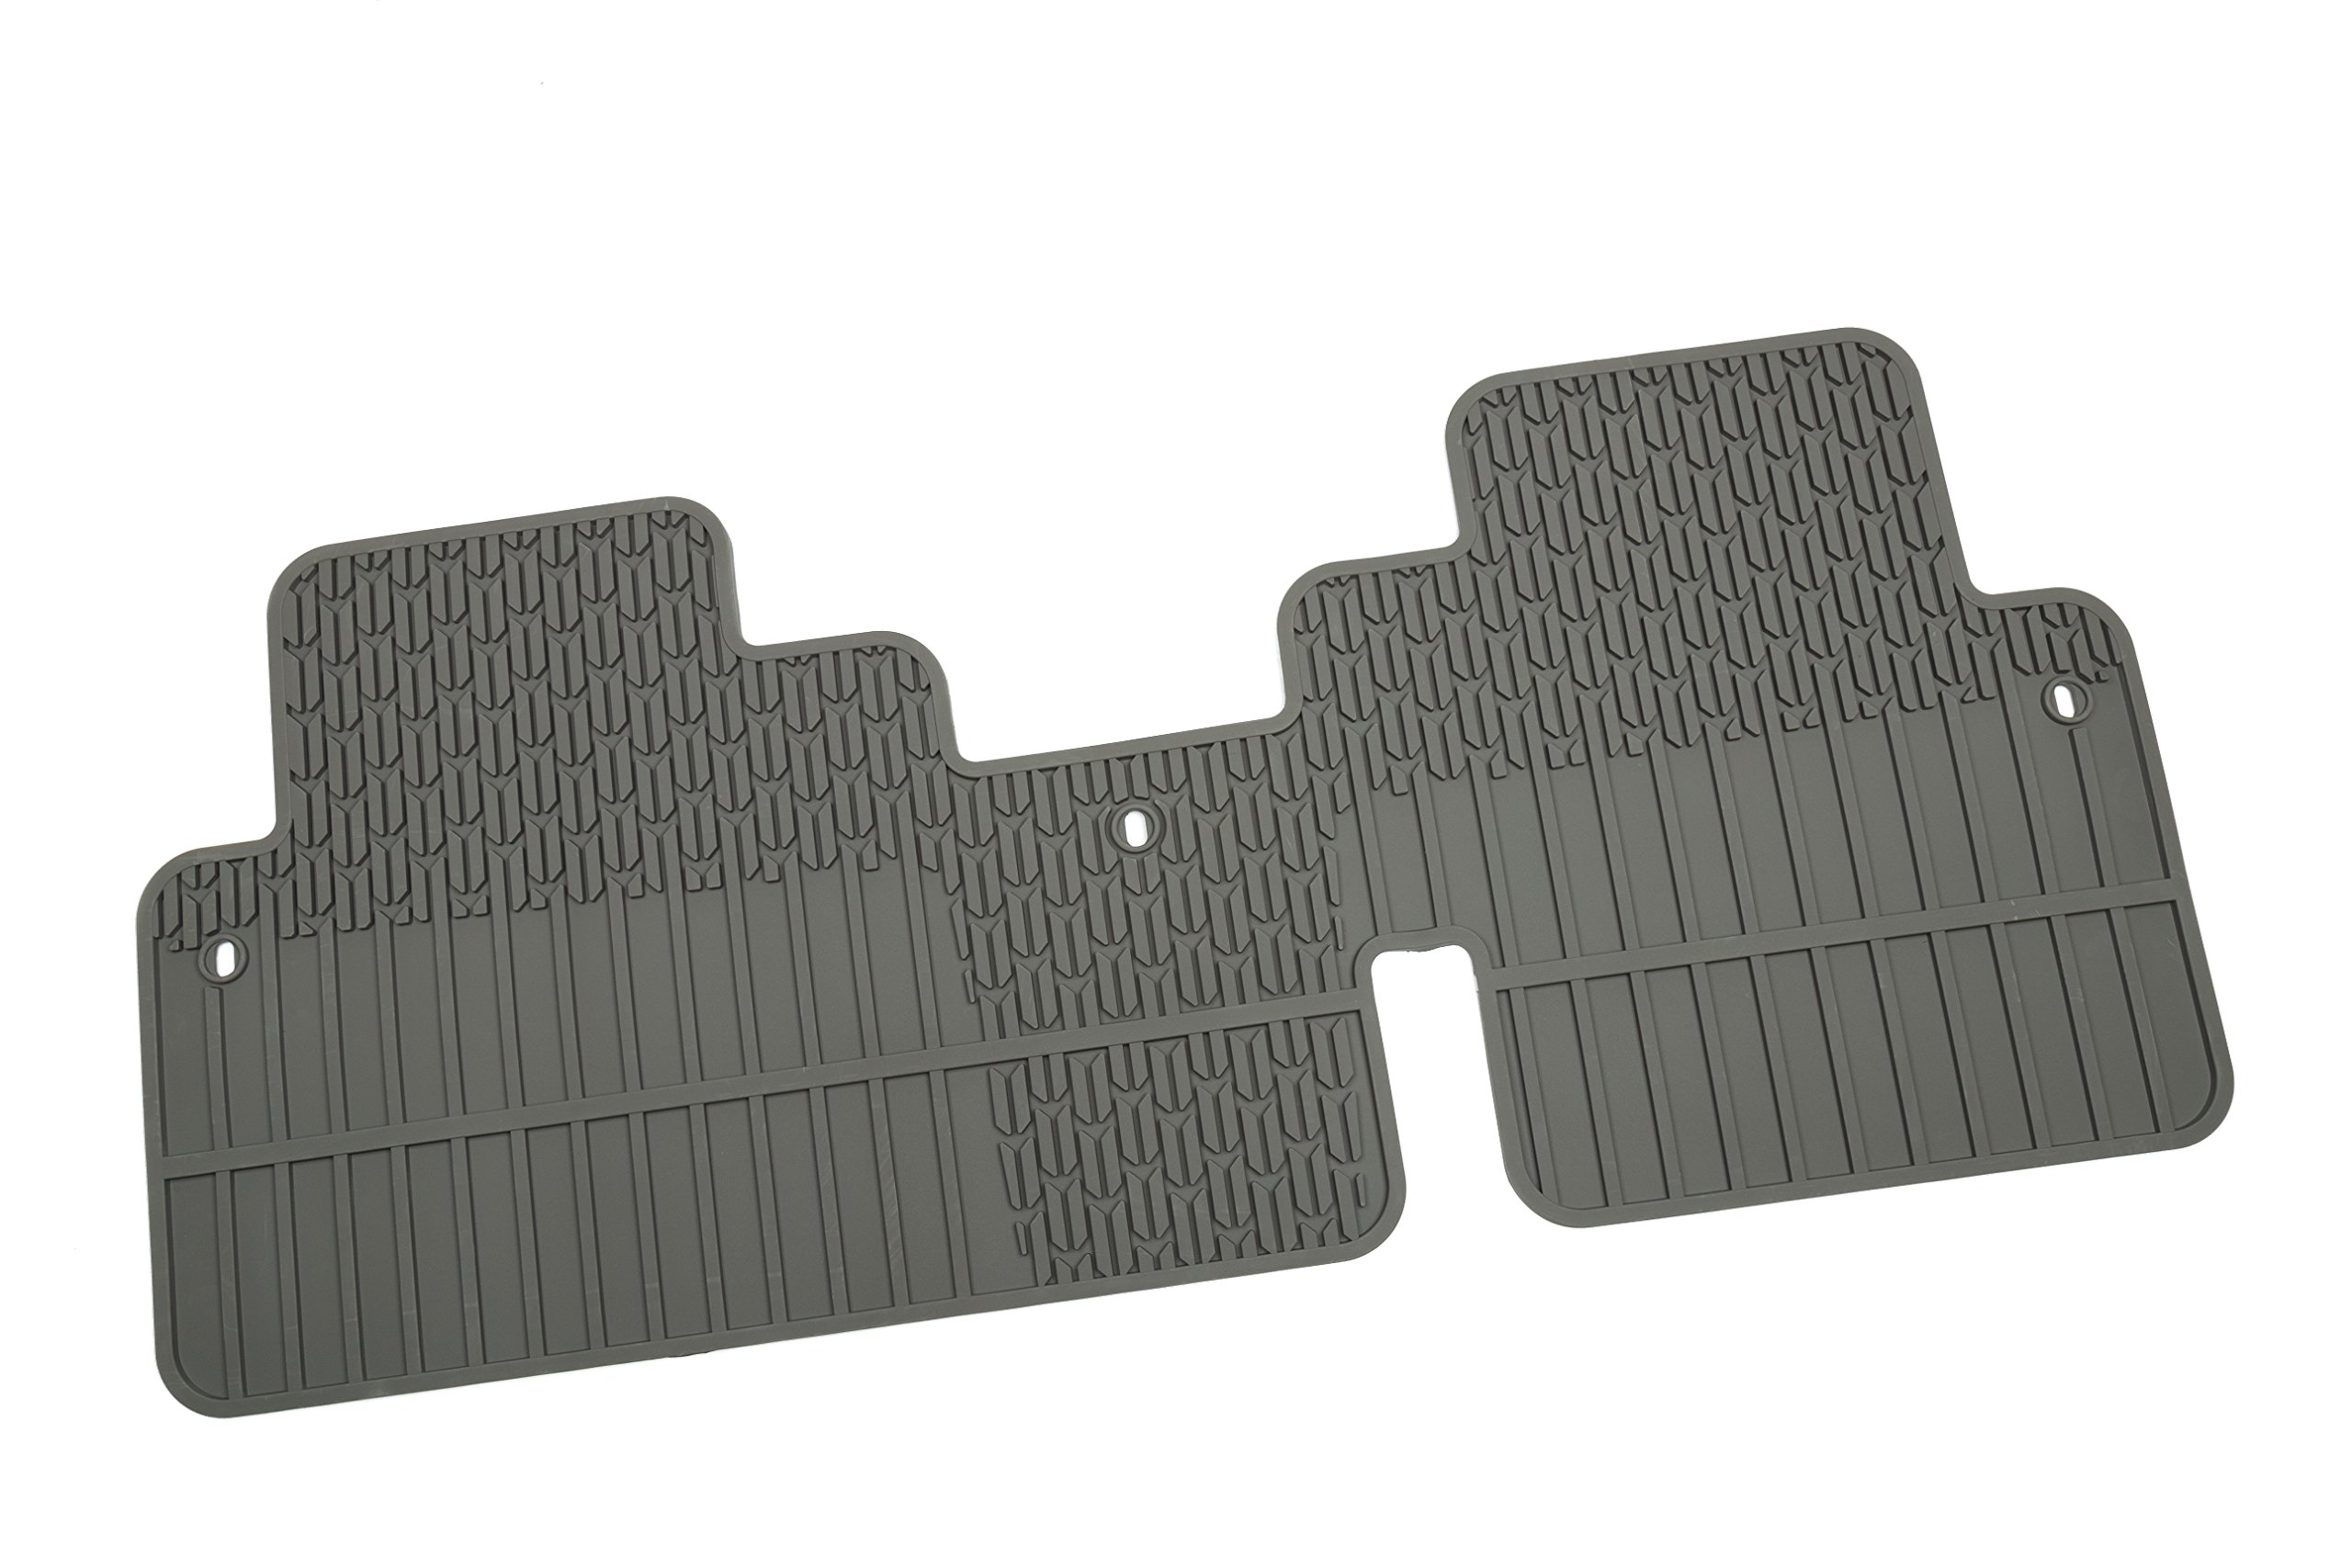 General Motors GM Accessories 22890404 Second Row 1-Piece All-Weather Floor Mat in Titanium with Deep Rib